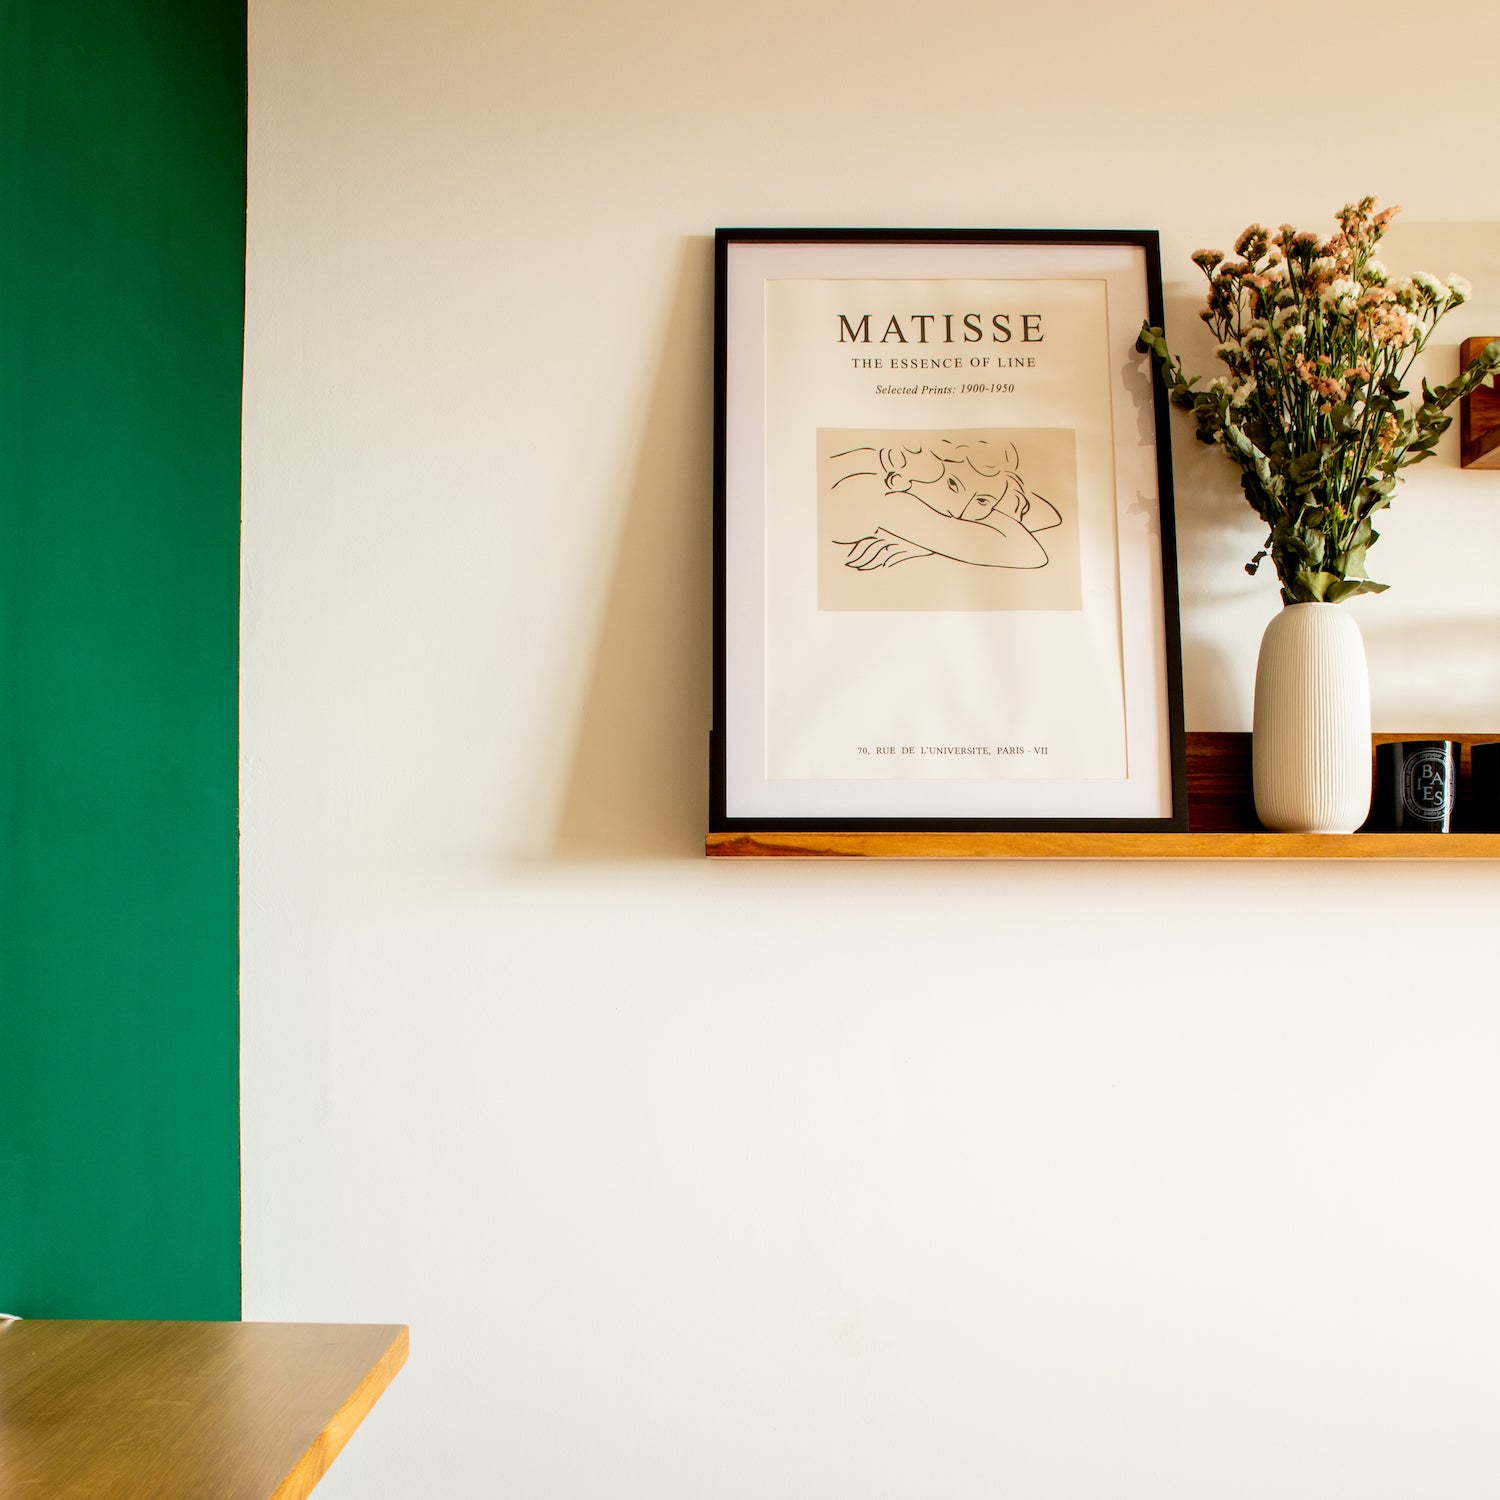 green paint and shelf with florals